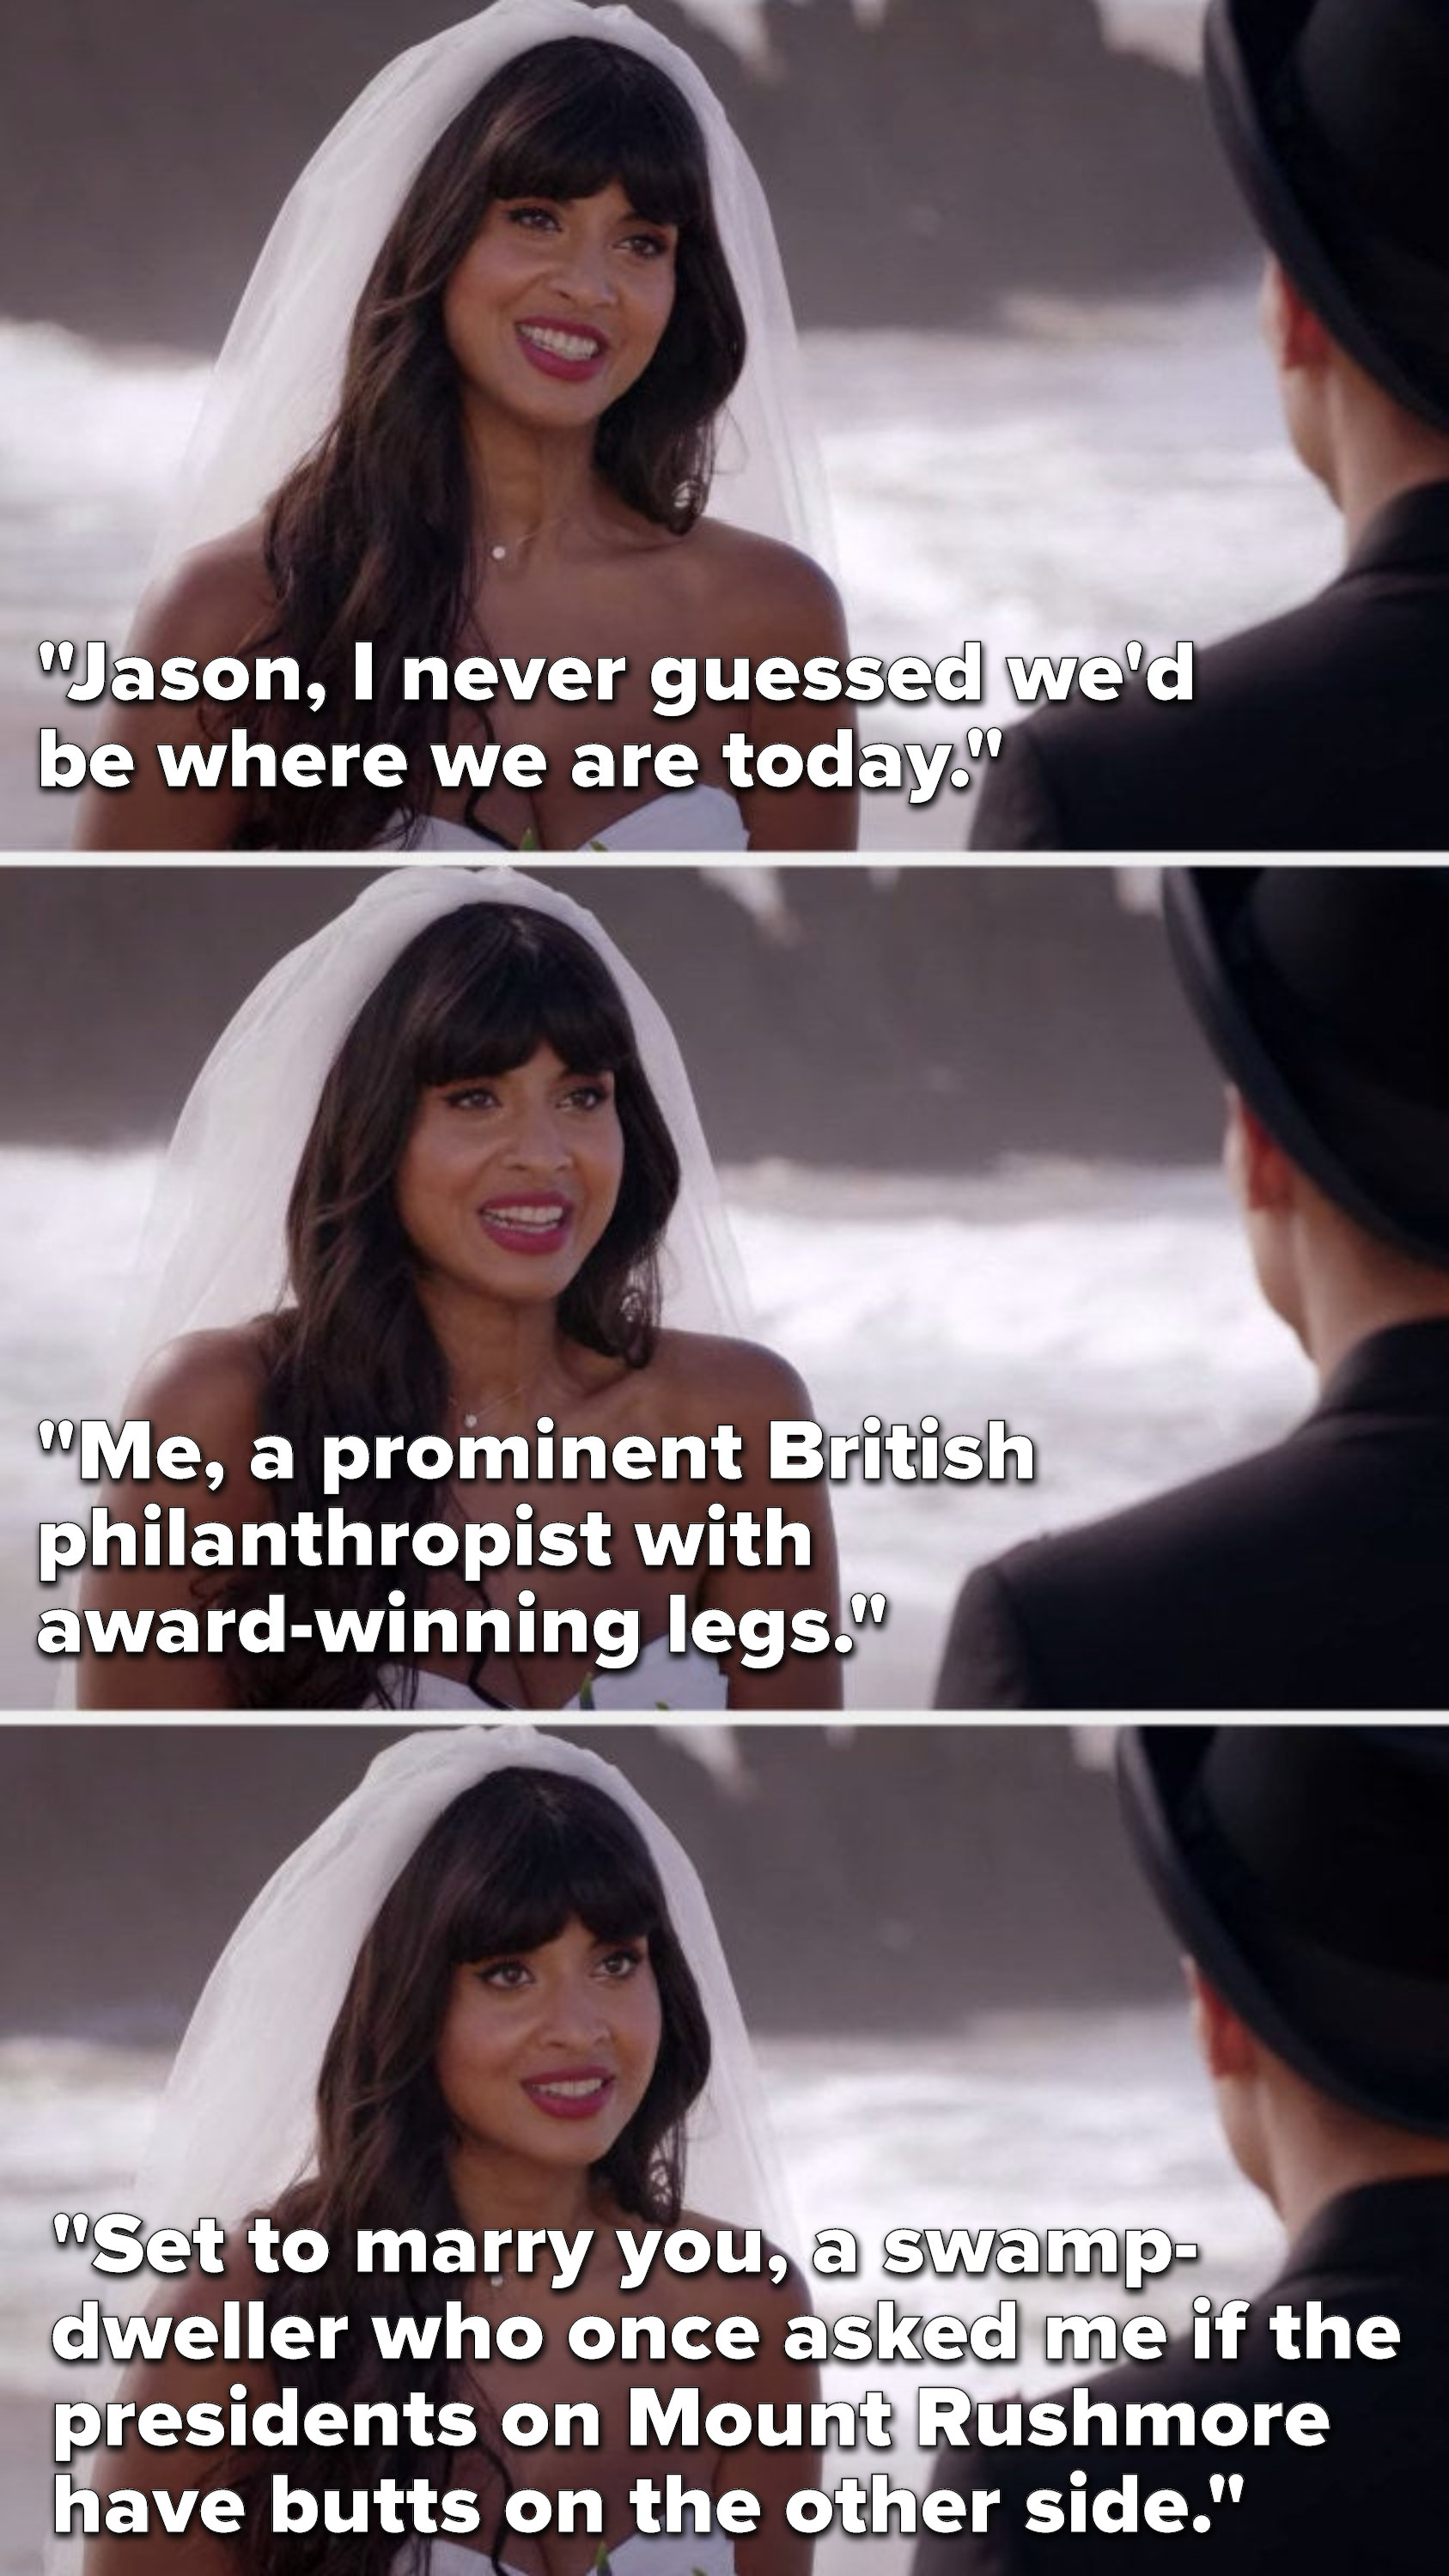 """Tahani says, """"Jason, I never guessed we'd be where we are today, me, a prominent British philanthropist with award-winning legs, set to marry you, a swamp-dweller who once asked me if the presidents on Mount Rushmore have butts on the other side"""""""